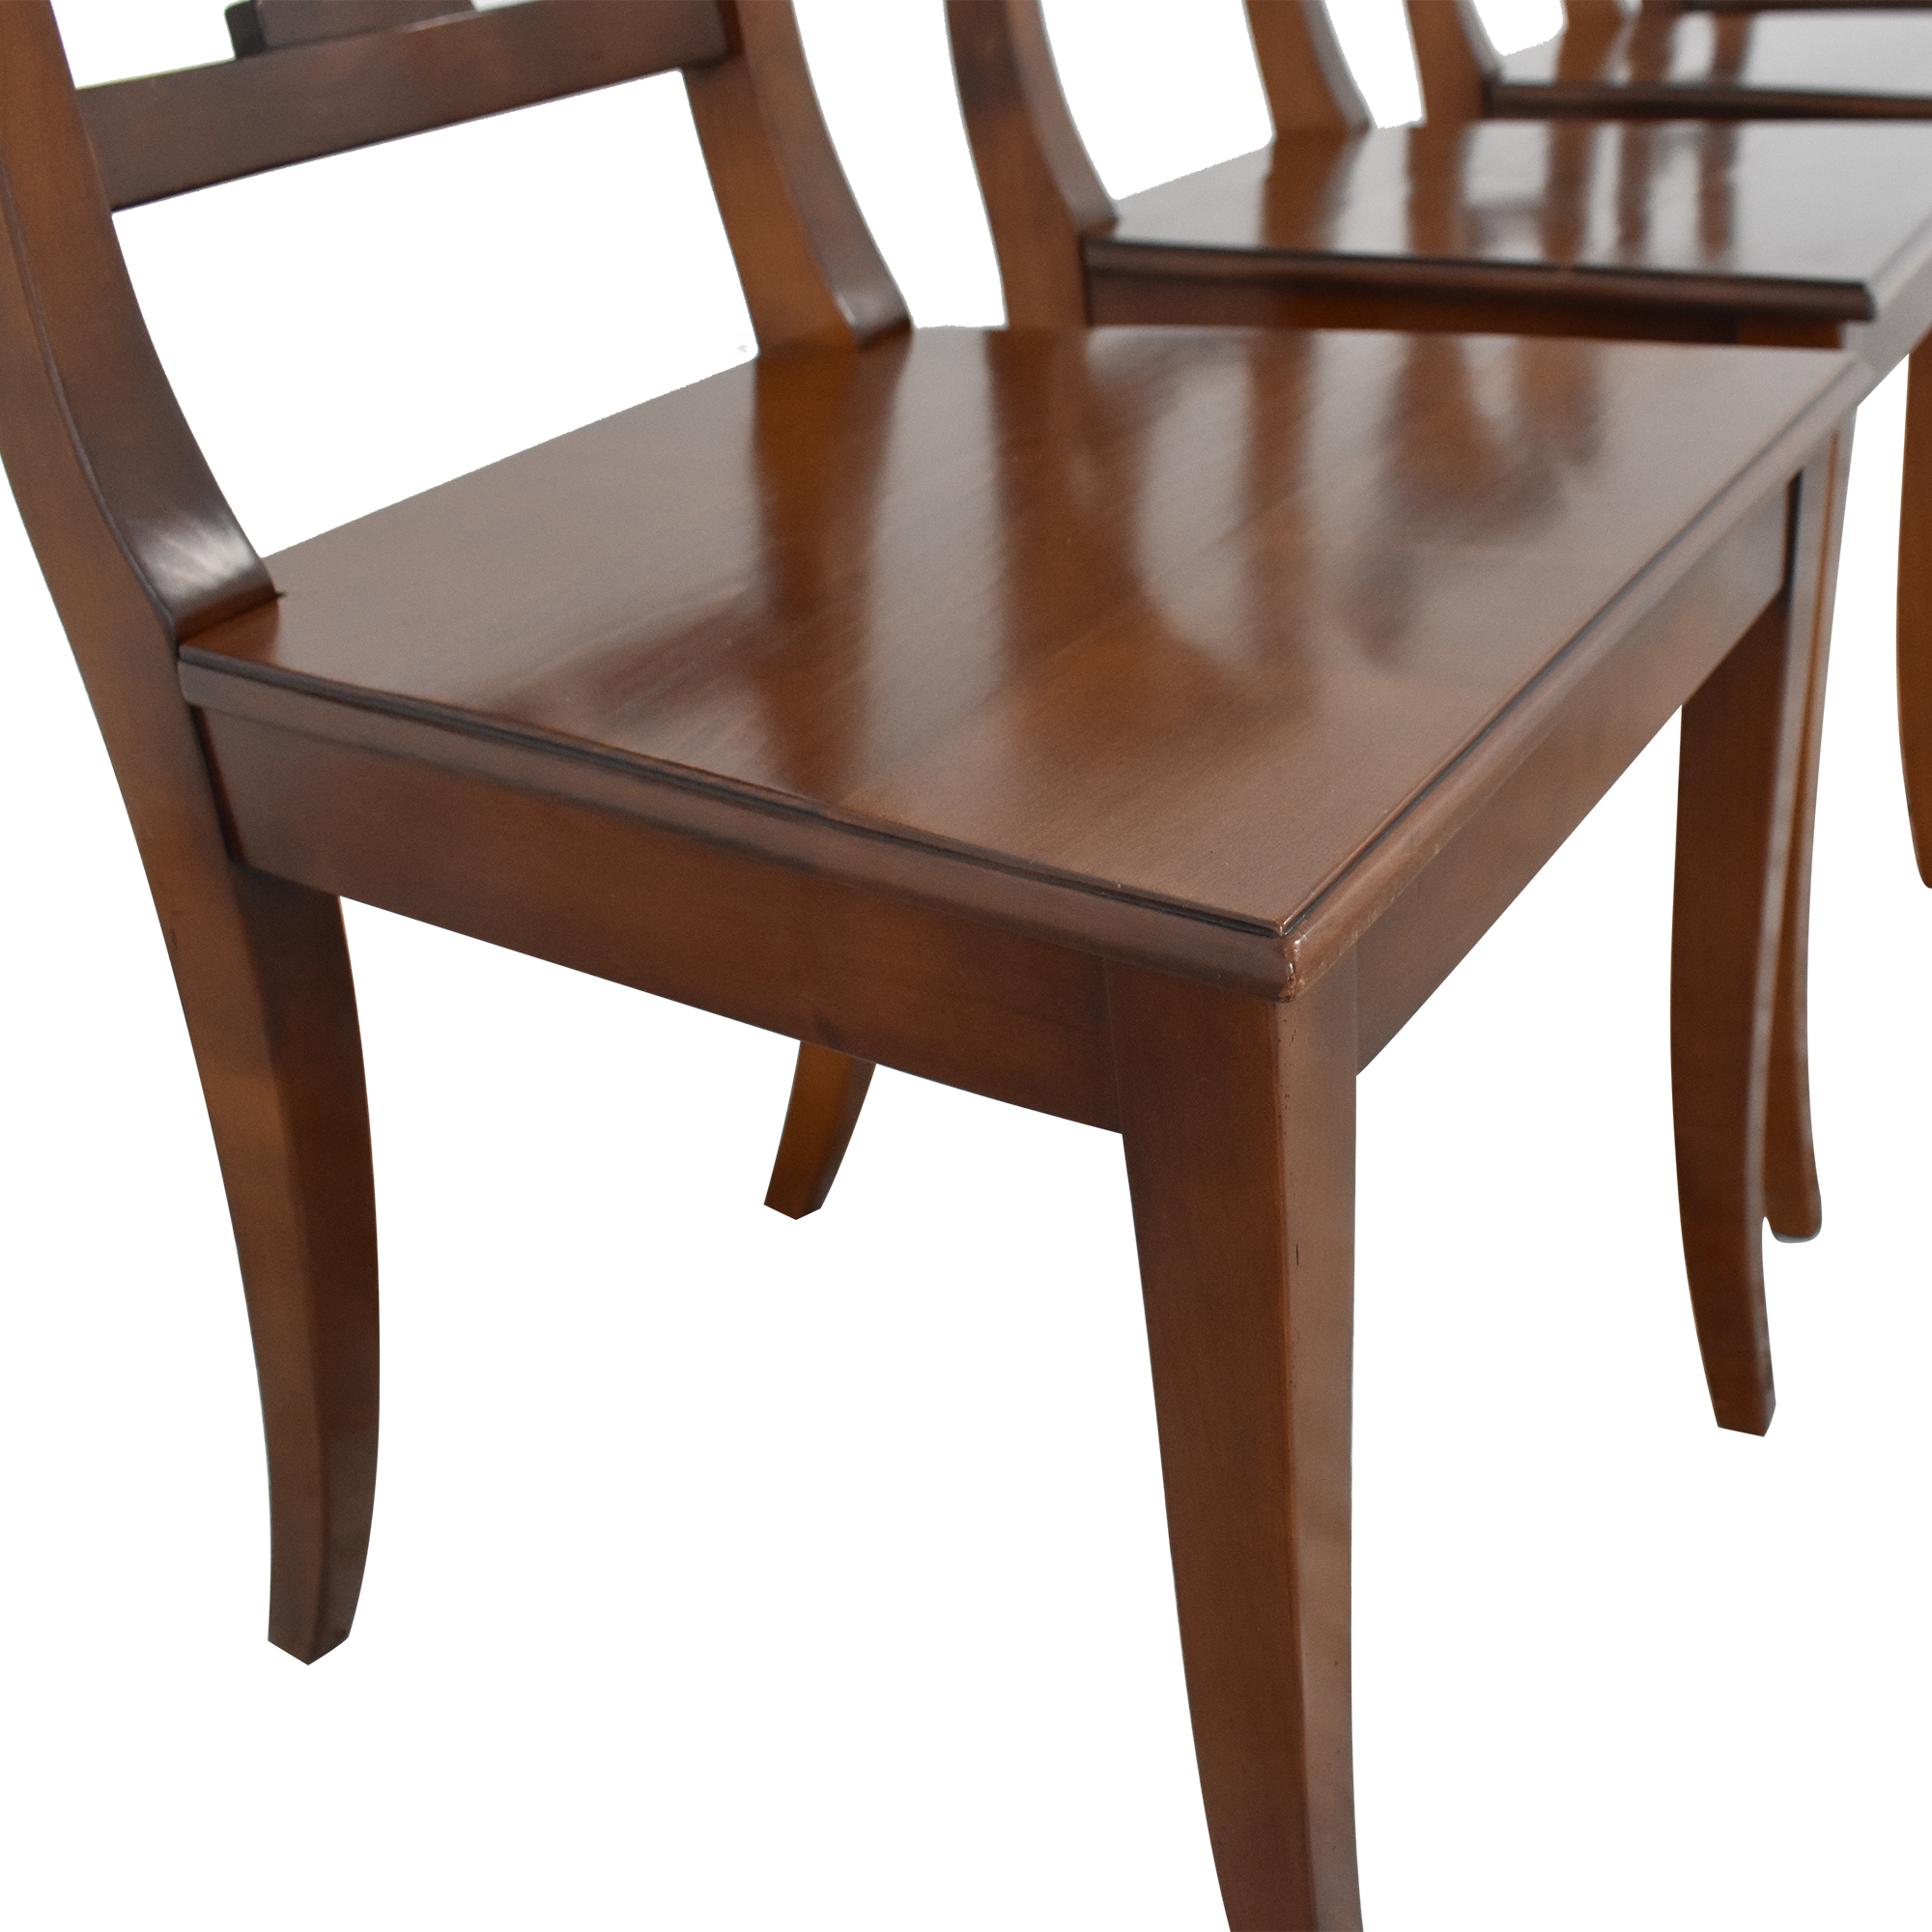 Pfister Swiss Style Dining Chairs / Chairs